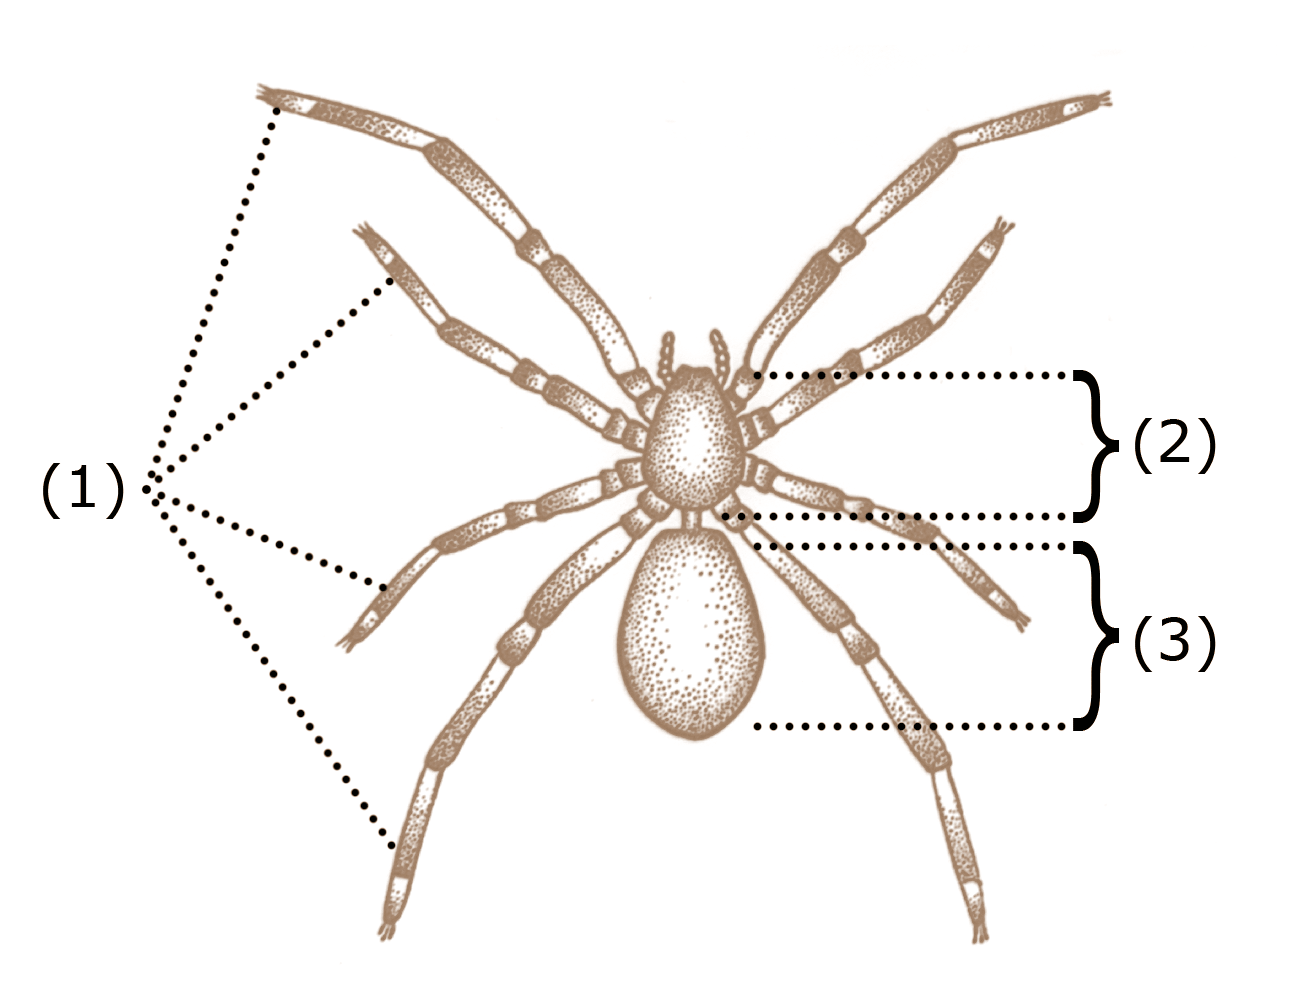 Spider Legs and How They Work - The Infinite Spider